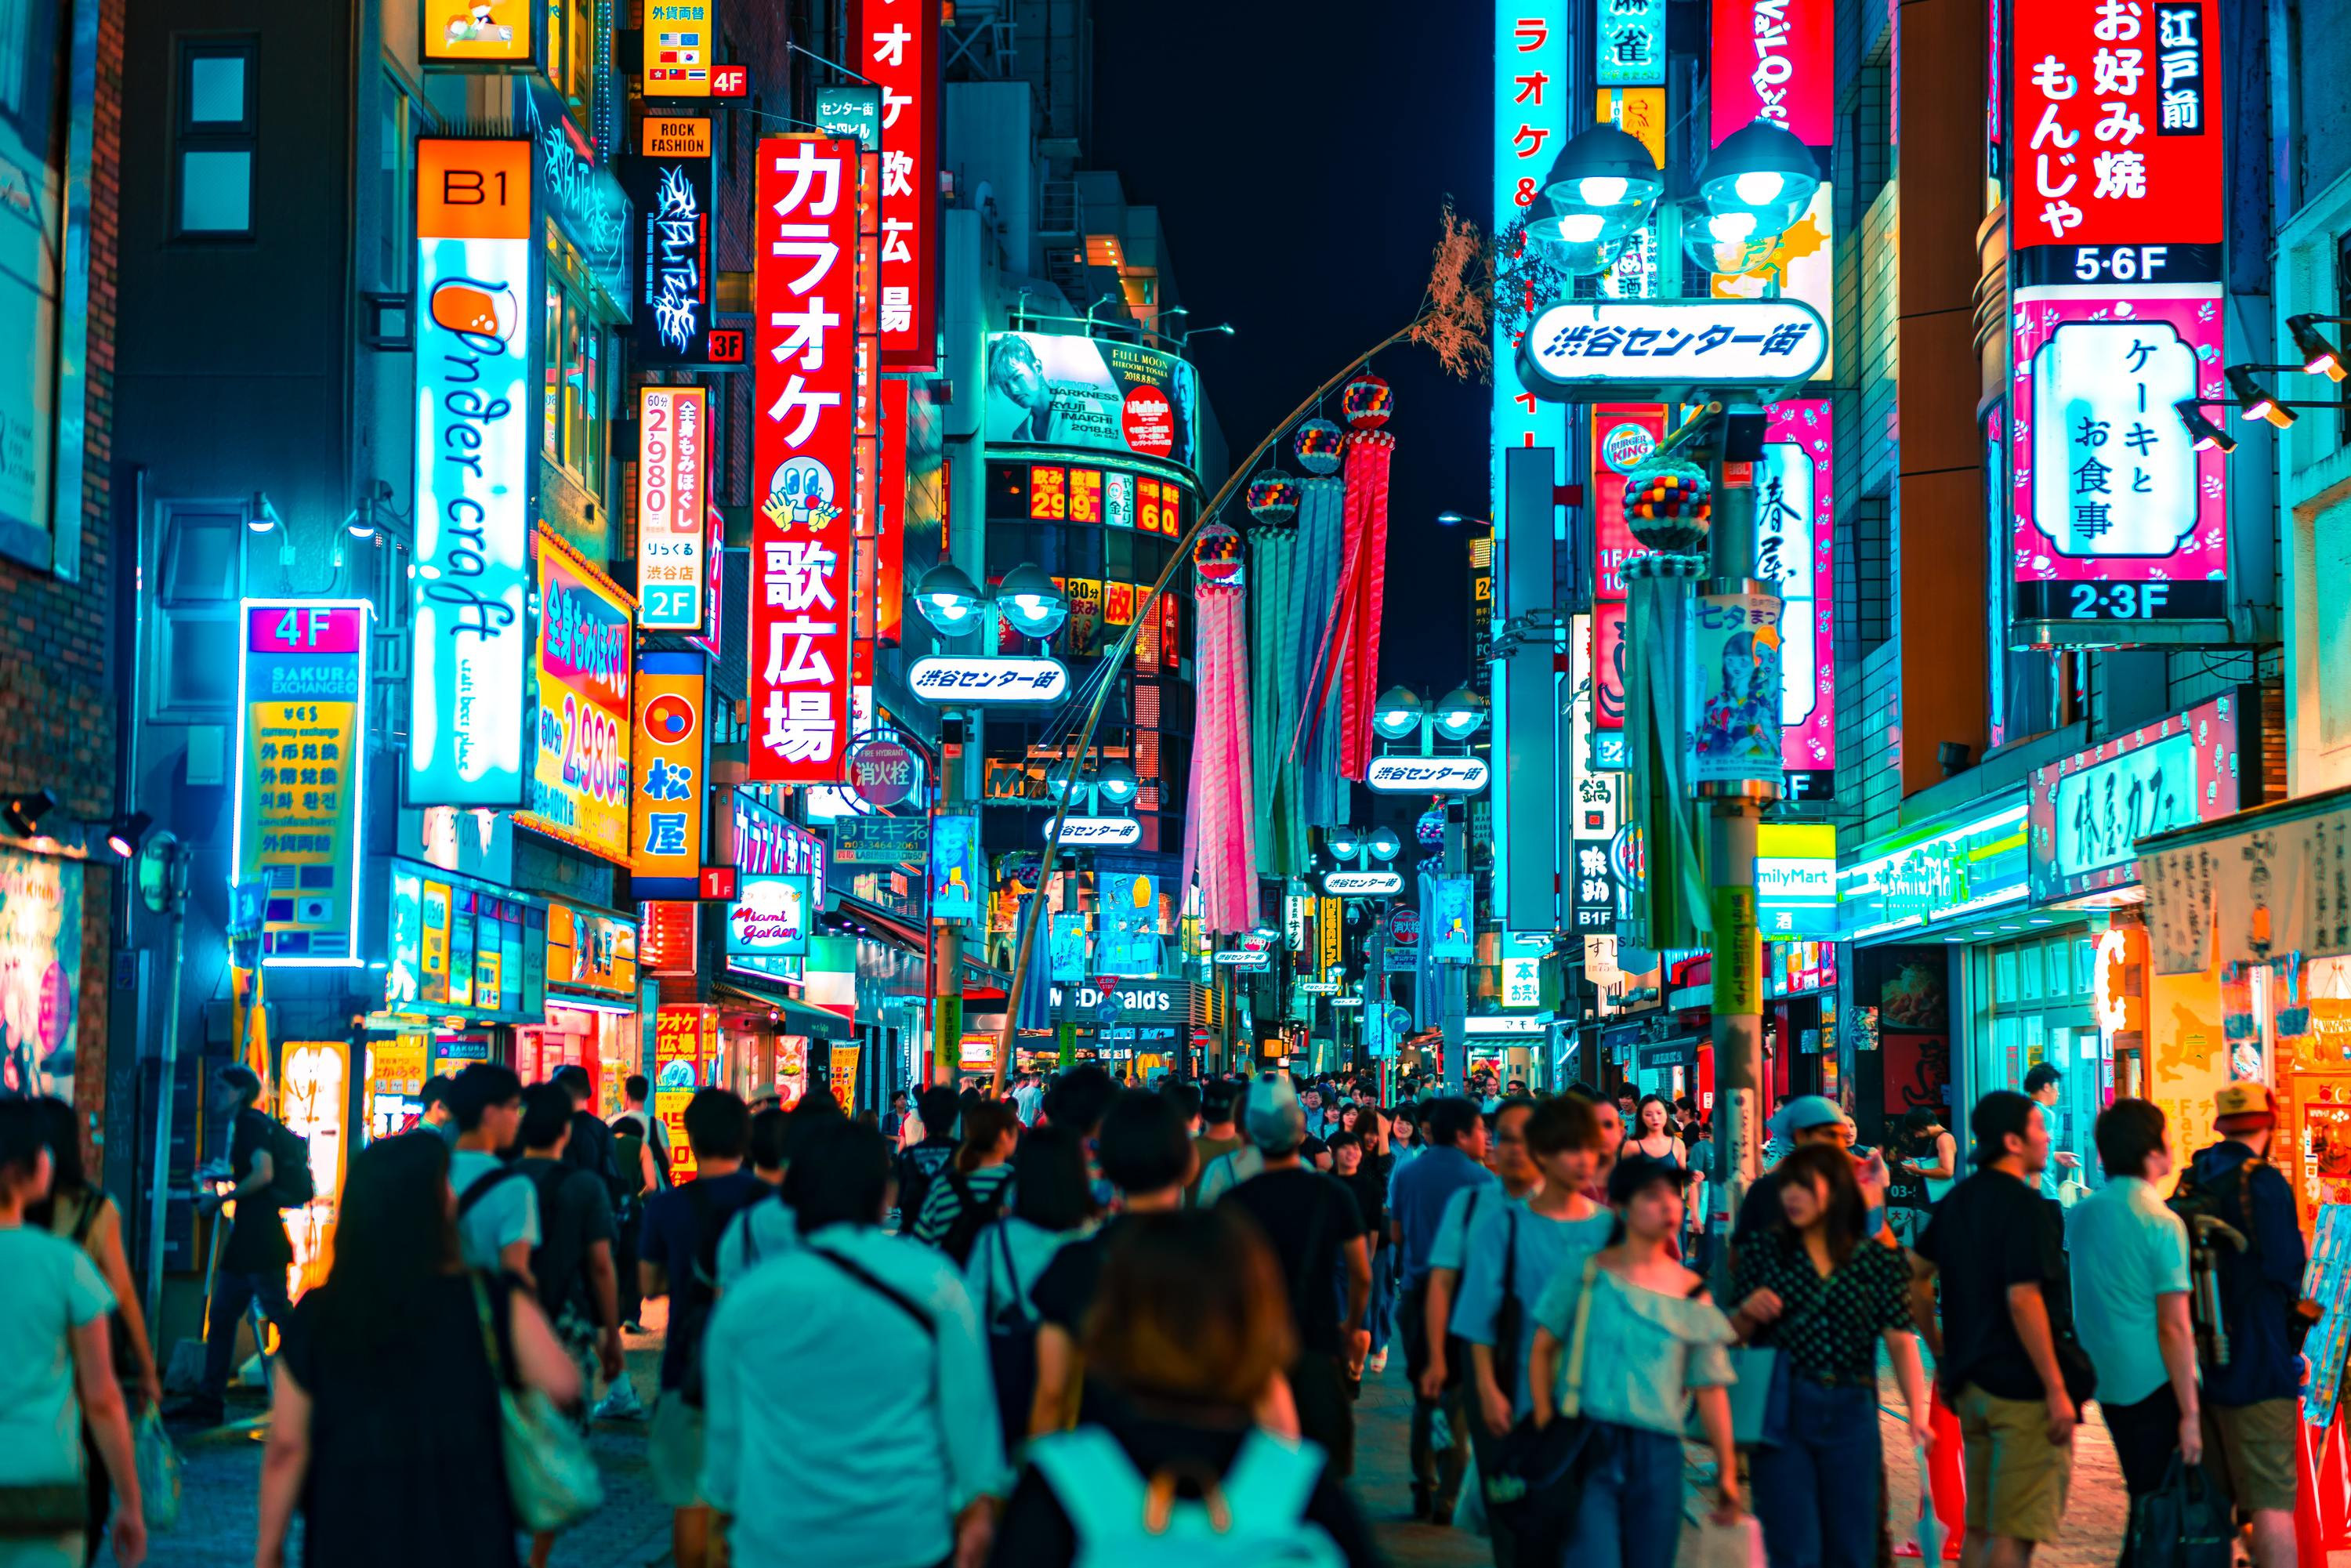 A crowd of people walking on a brightly lit street at night